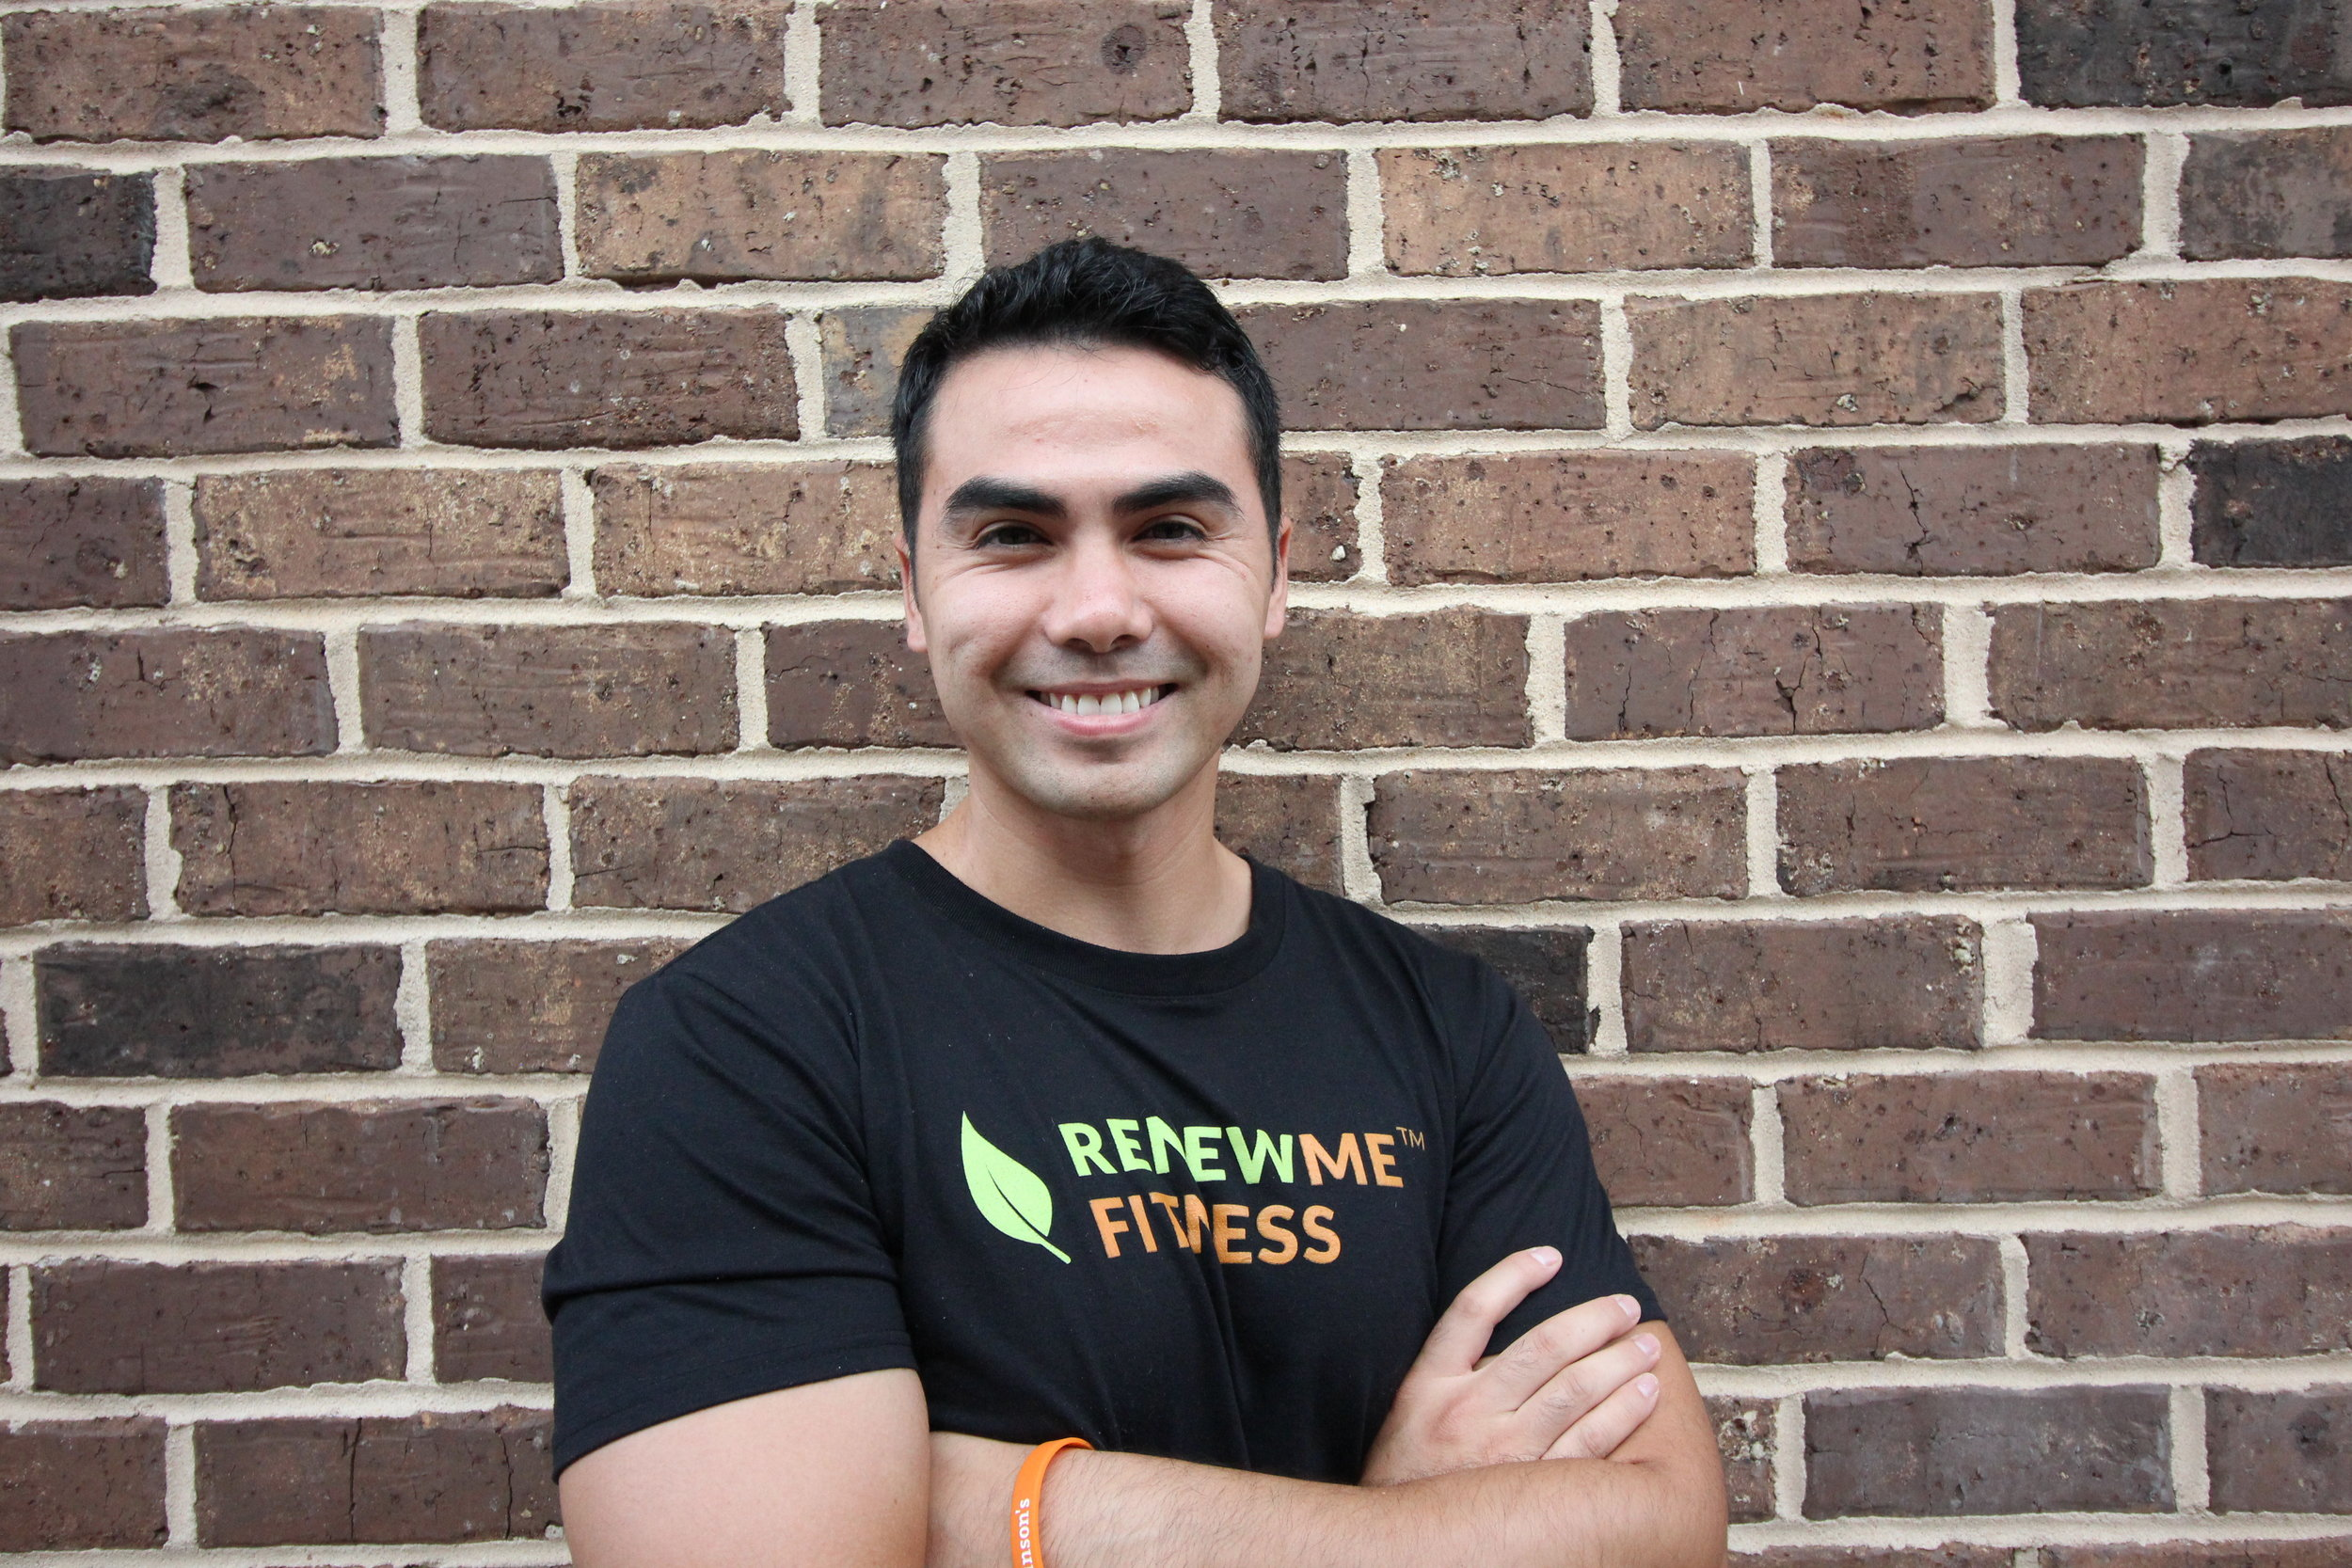 Copy of Minh, RenewMe Fitness Personal Trainer